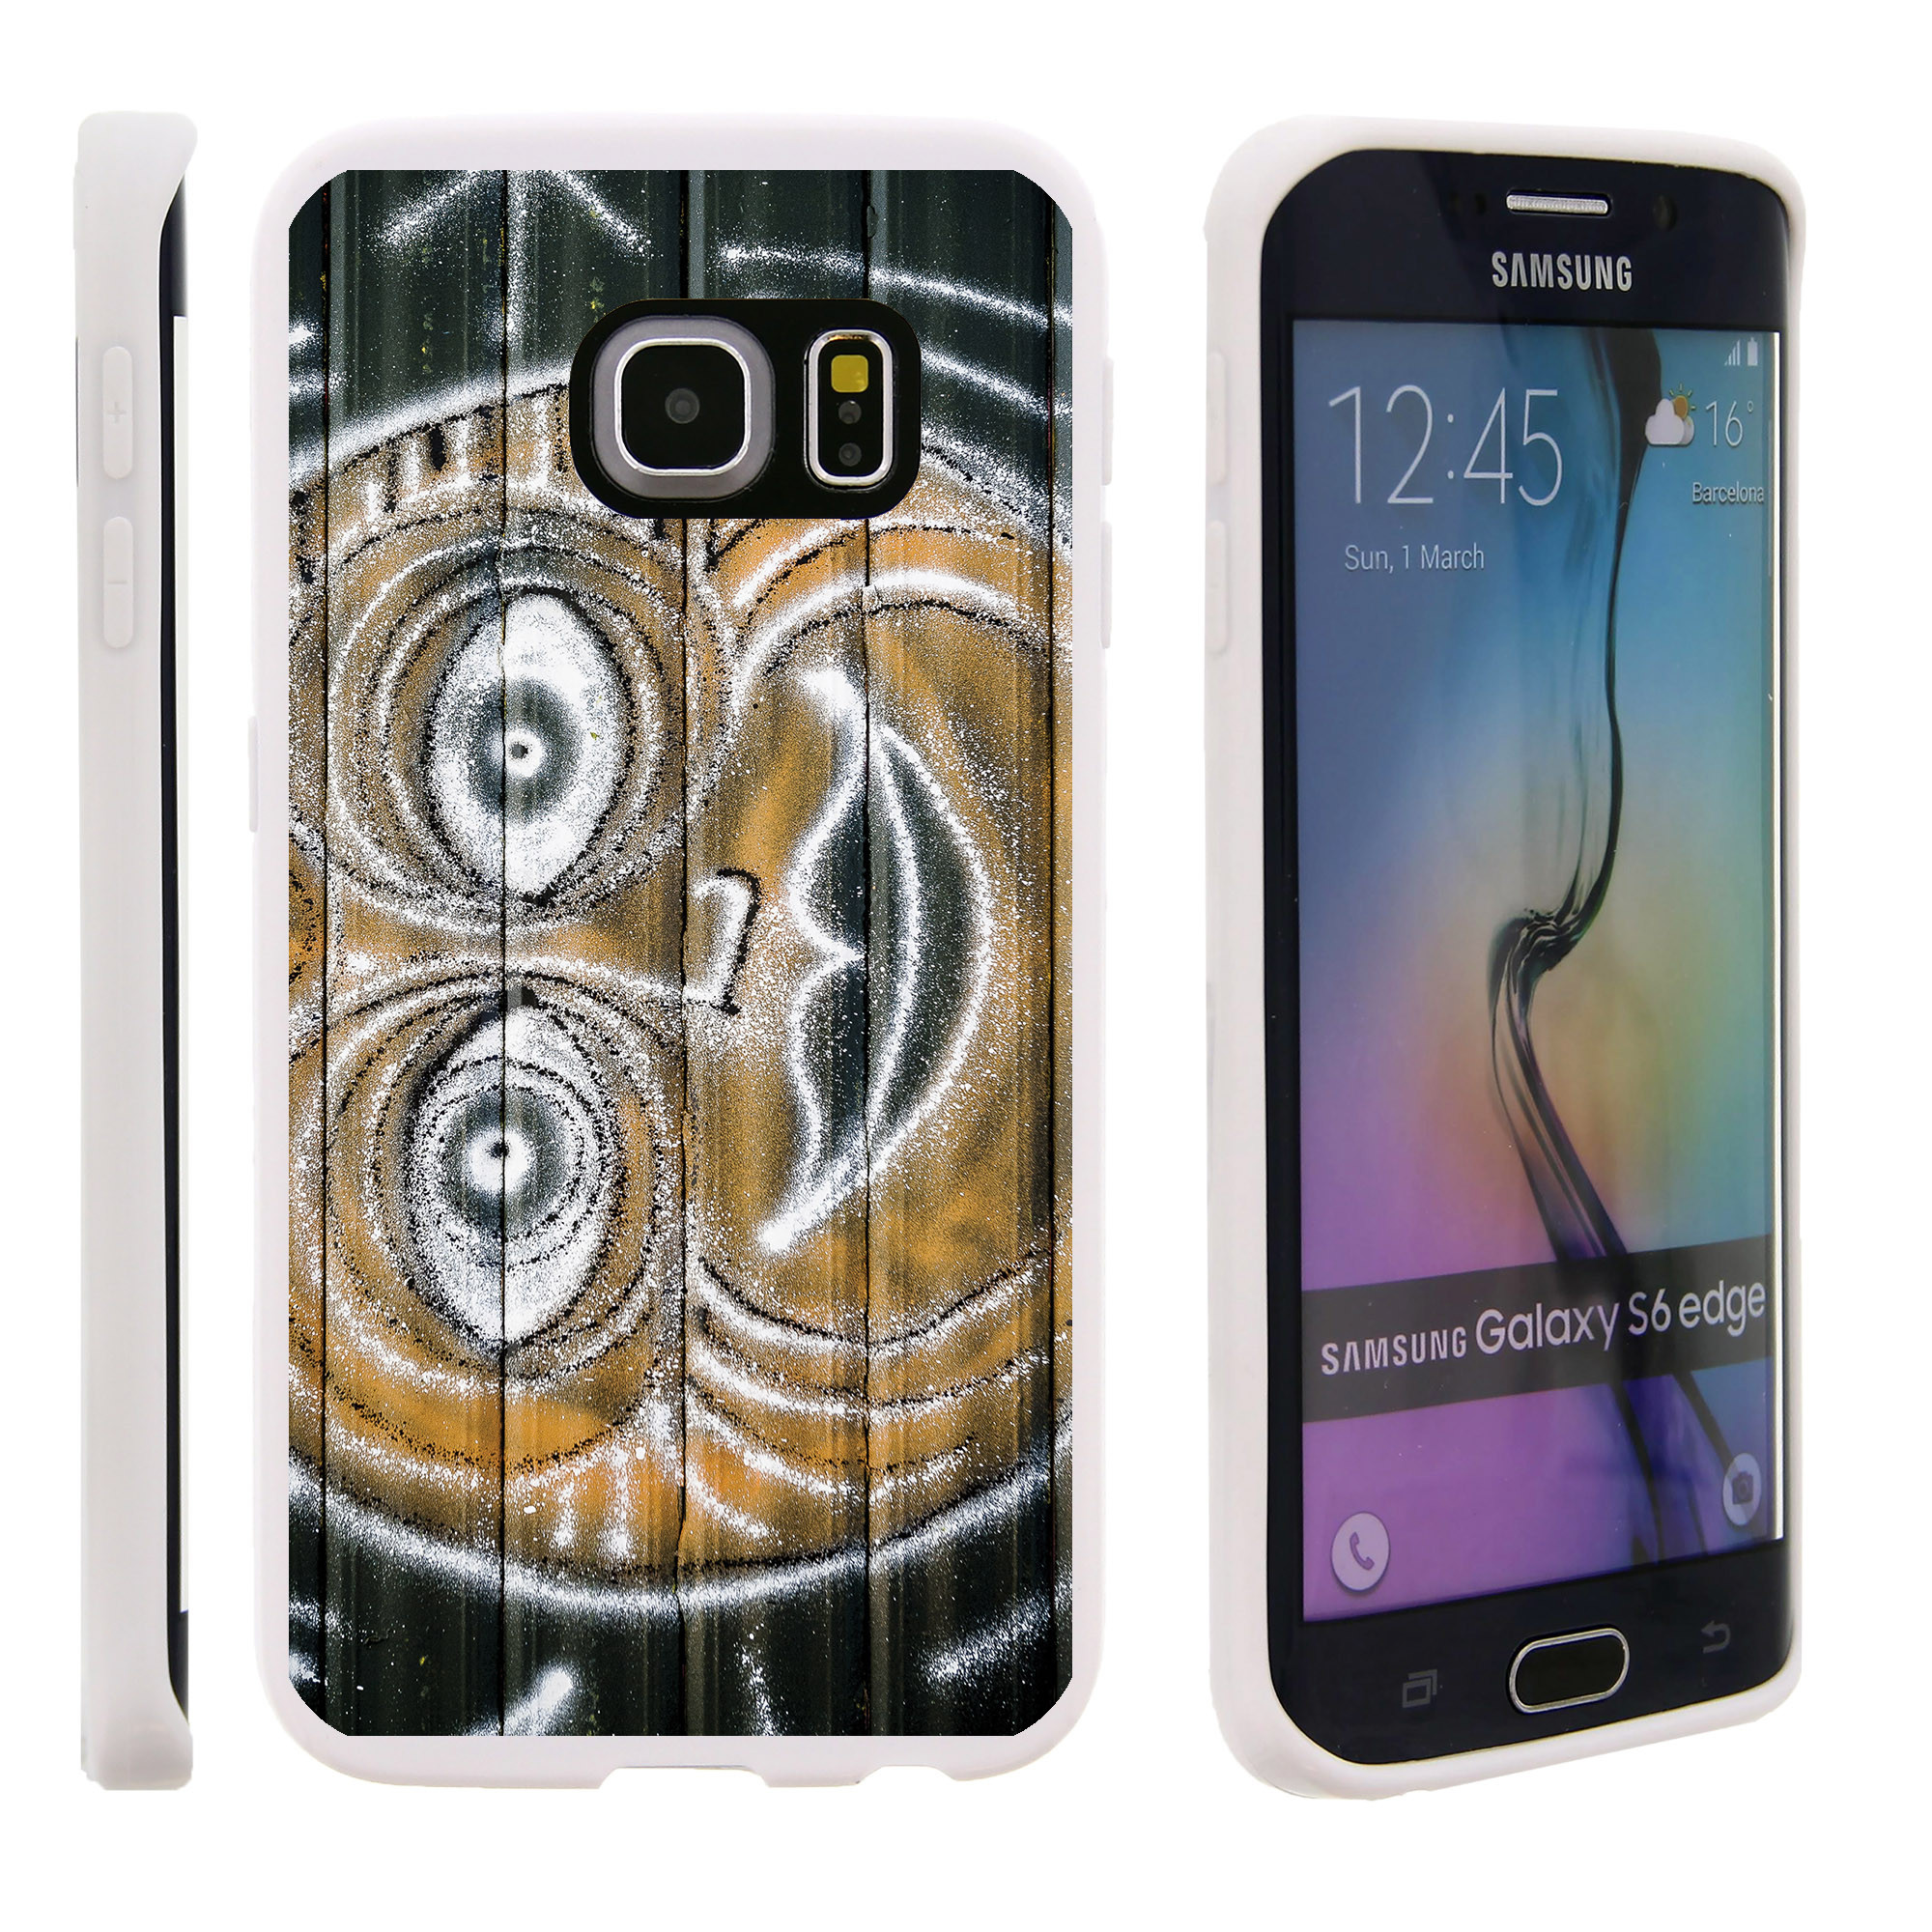 Samsung Galaxy S6 Edge G925, Flexible Case [FLEX FORCE] Slim Durable TPU Sleek Bumper with Unique Designs - Sun Drawing